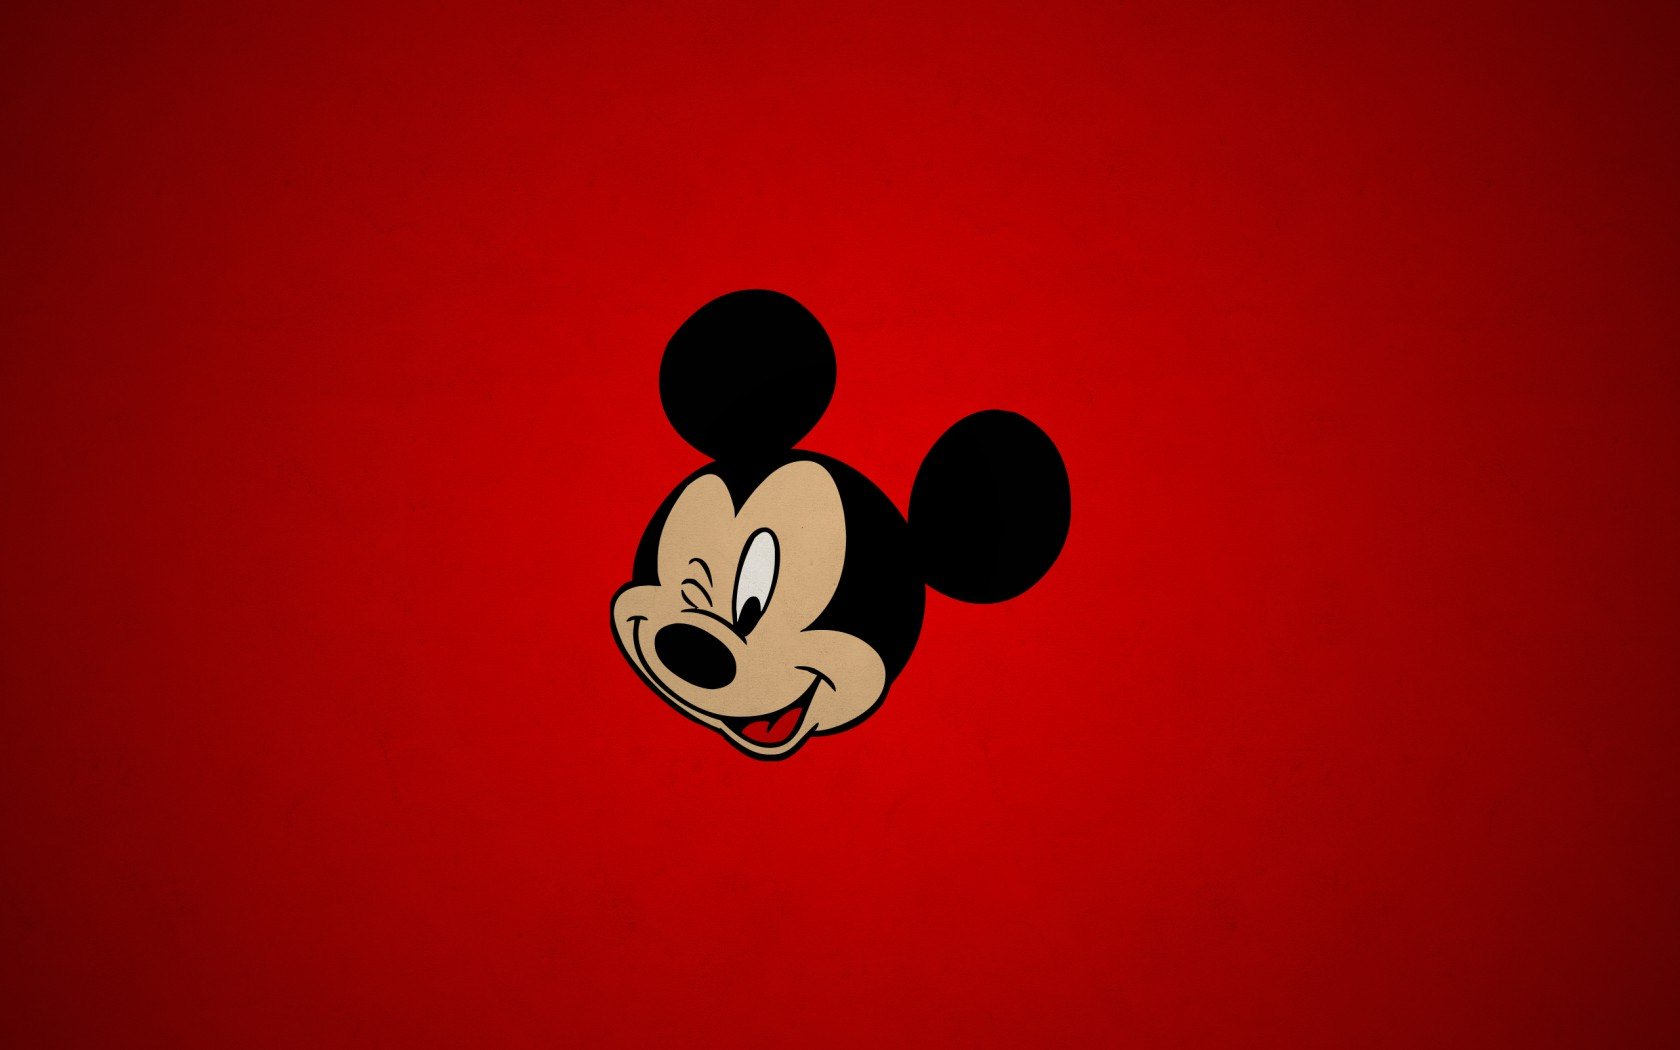 Cartoon Mickey Mouse Hd Wallpaper 03281 Wallpaperspick Com